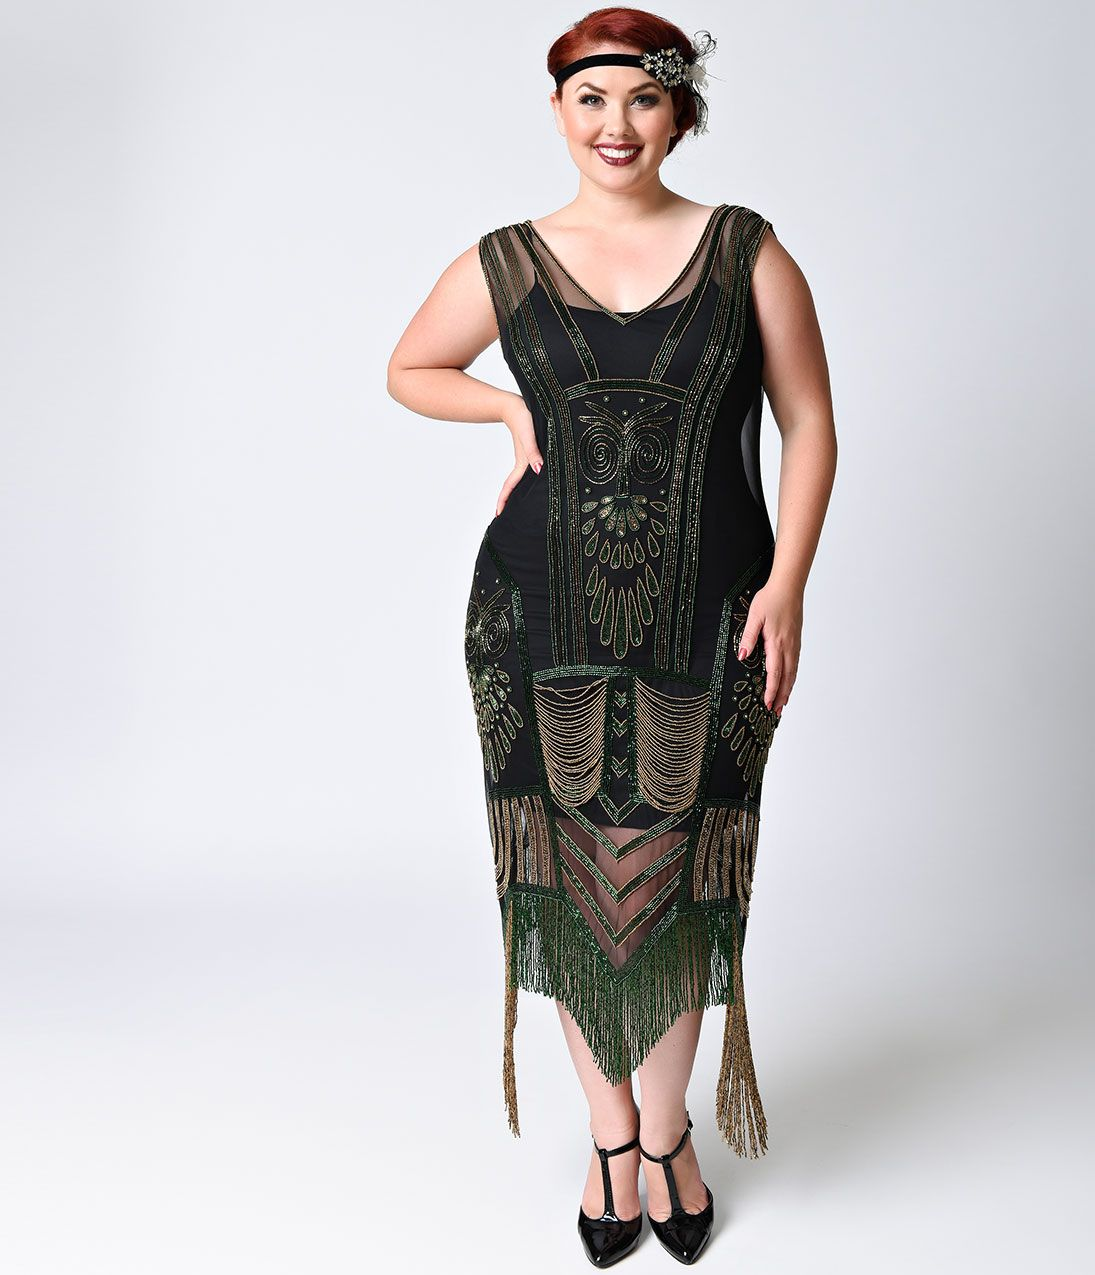 1920 plus size vintage dresses